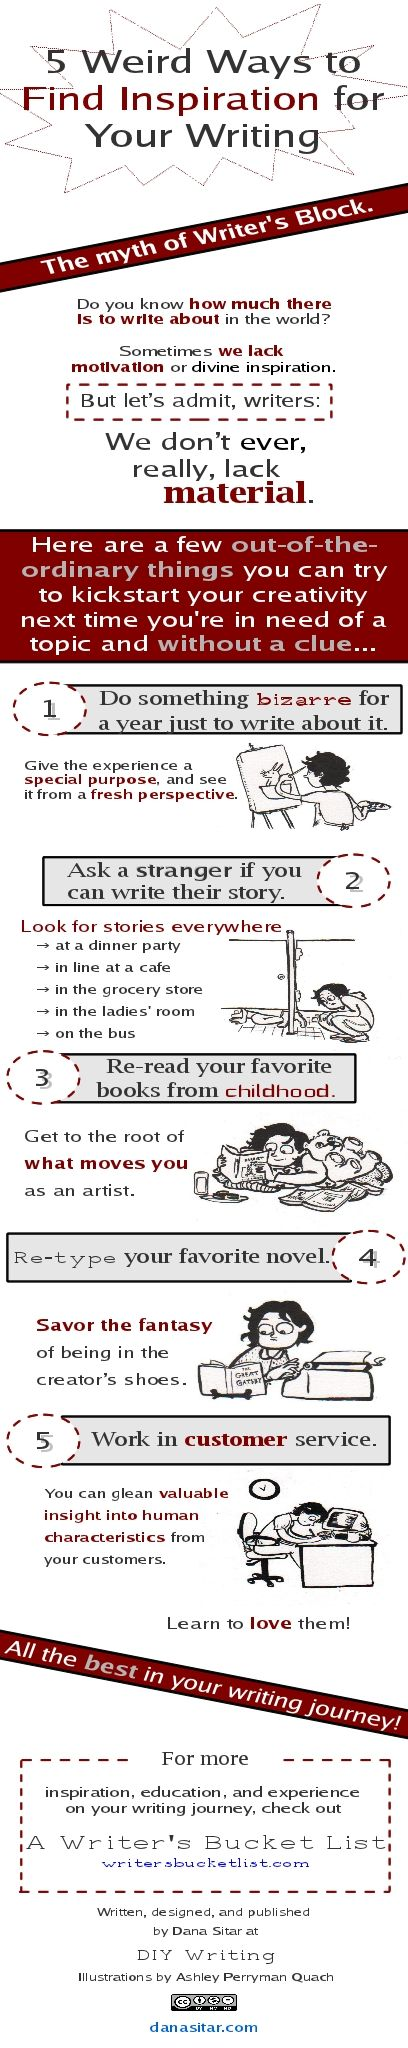 5 Weird Ways to Find Inspiration for Your Writing [Infographic]